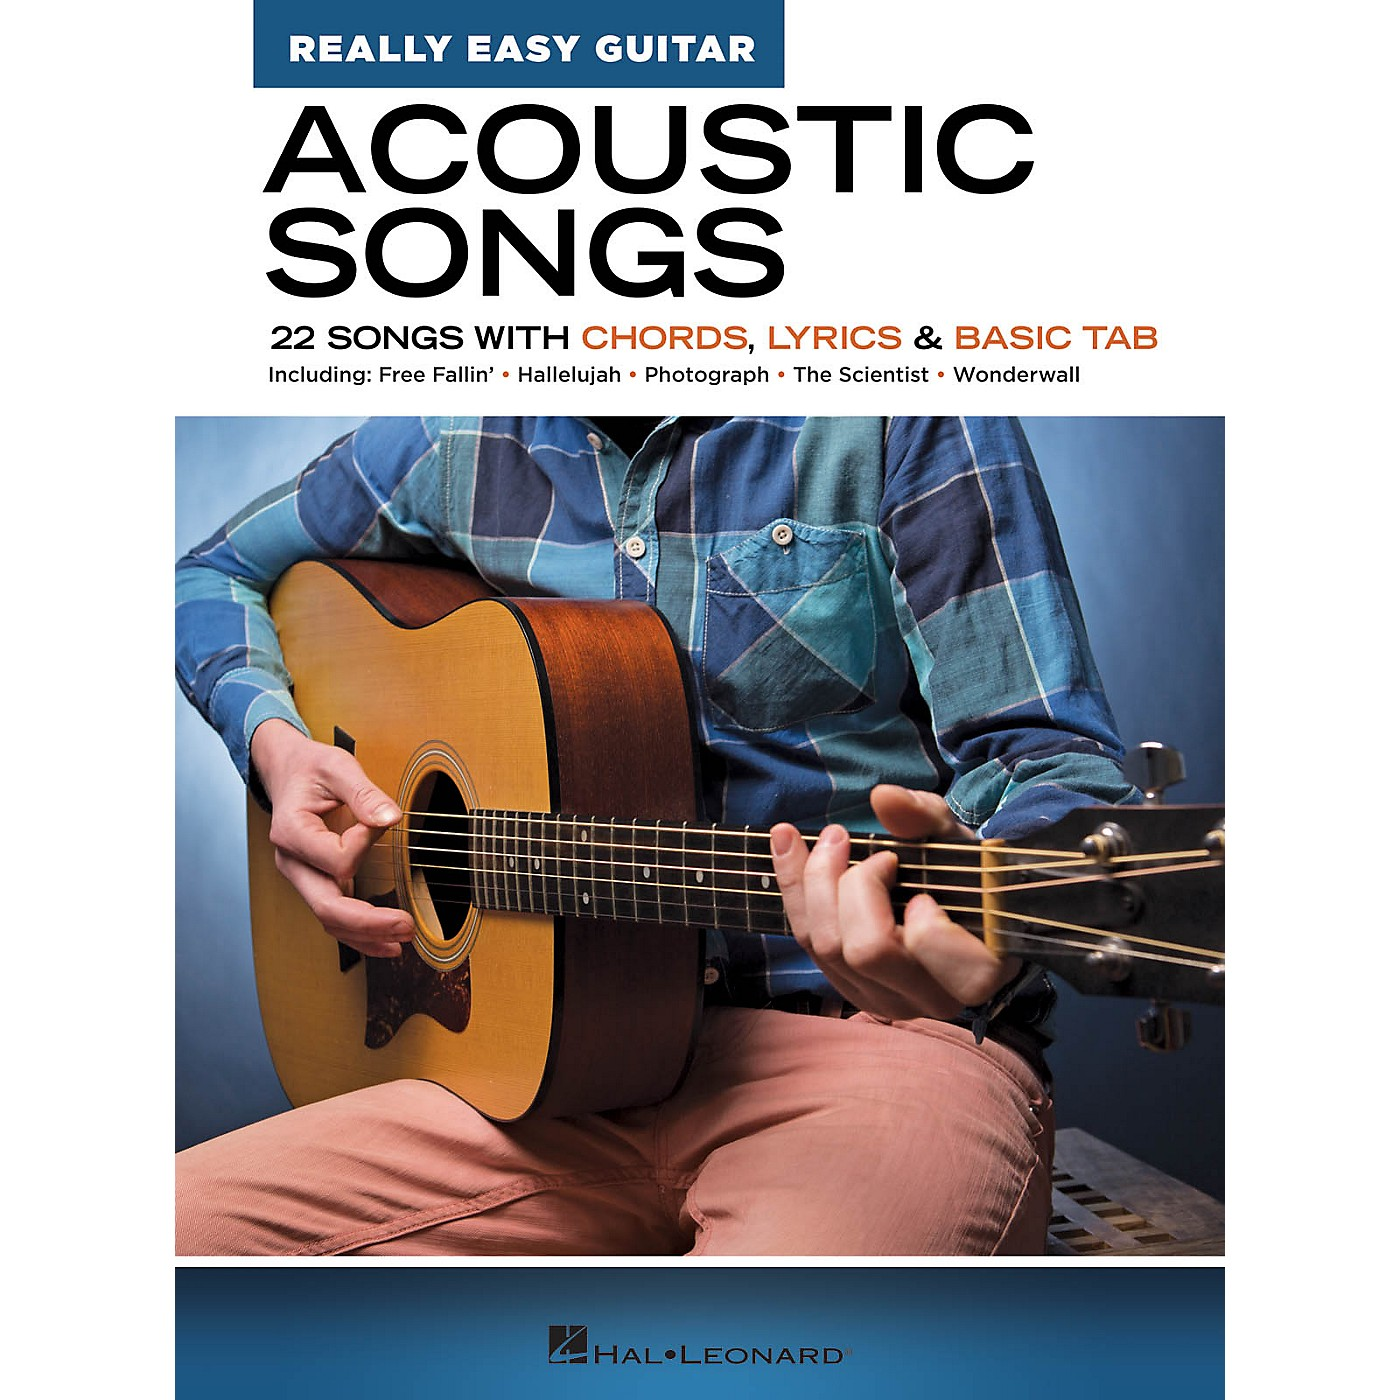 Hal Leonard Acoustic Songs - Really Easy Guitar Series (22 Songs with Chords, Lyrics & Basic Tab) thumbnail